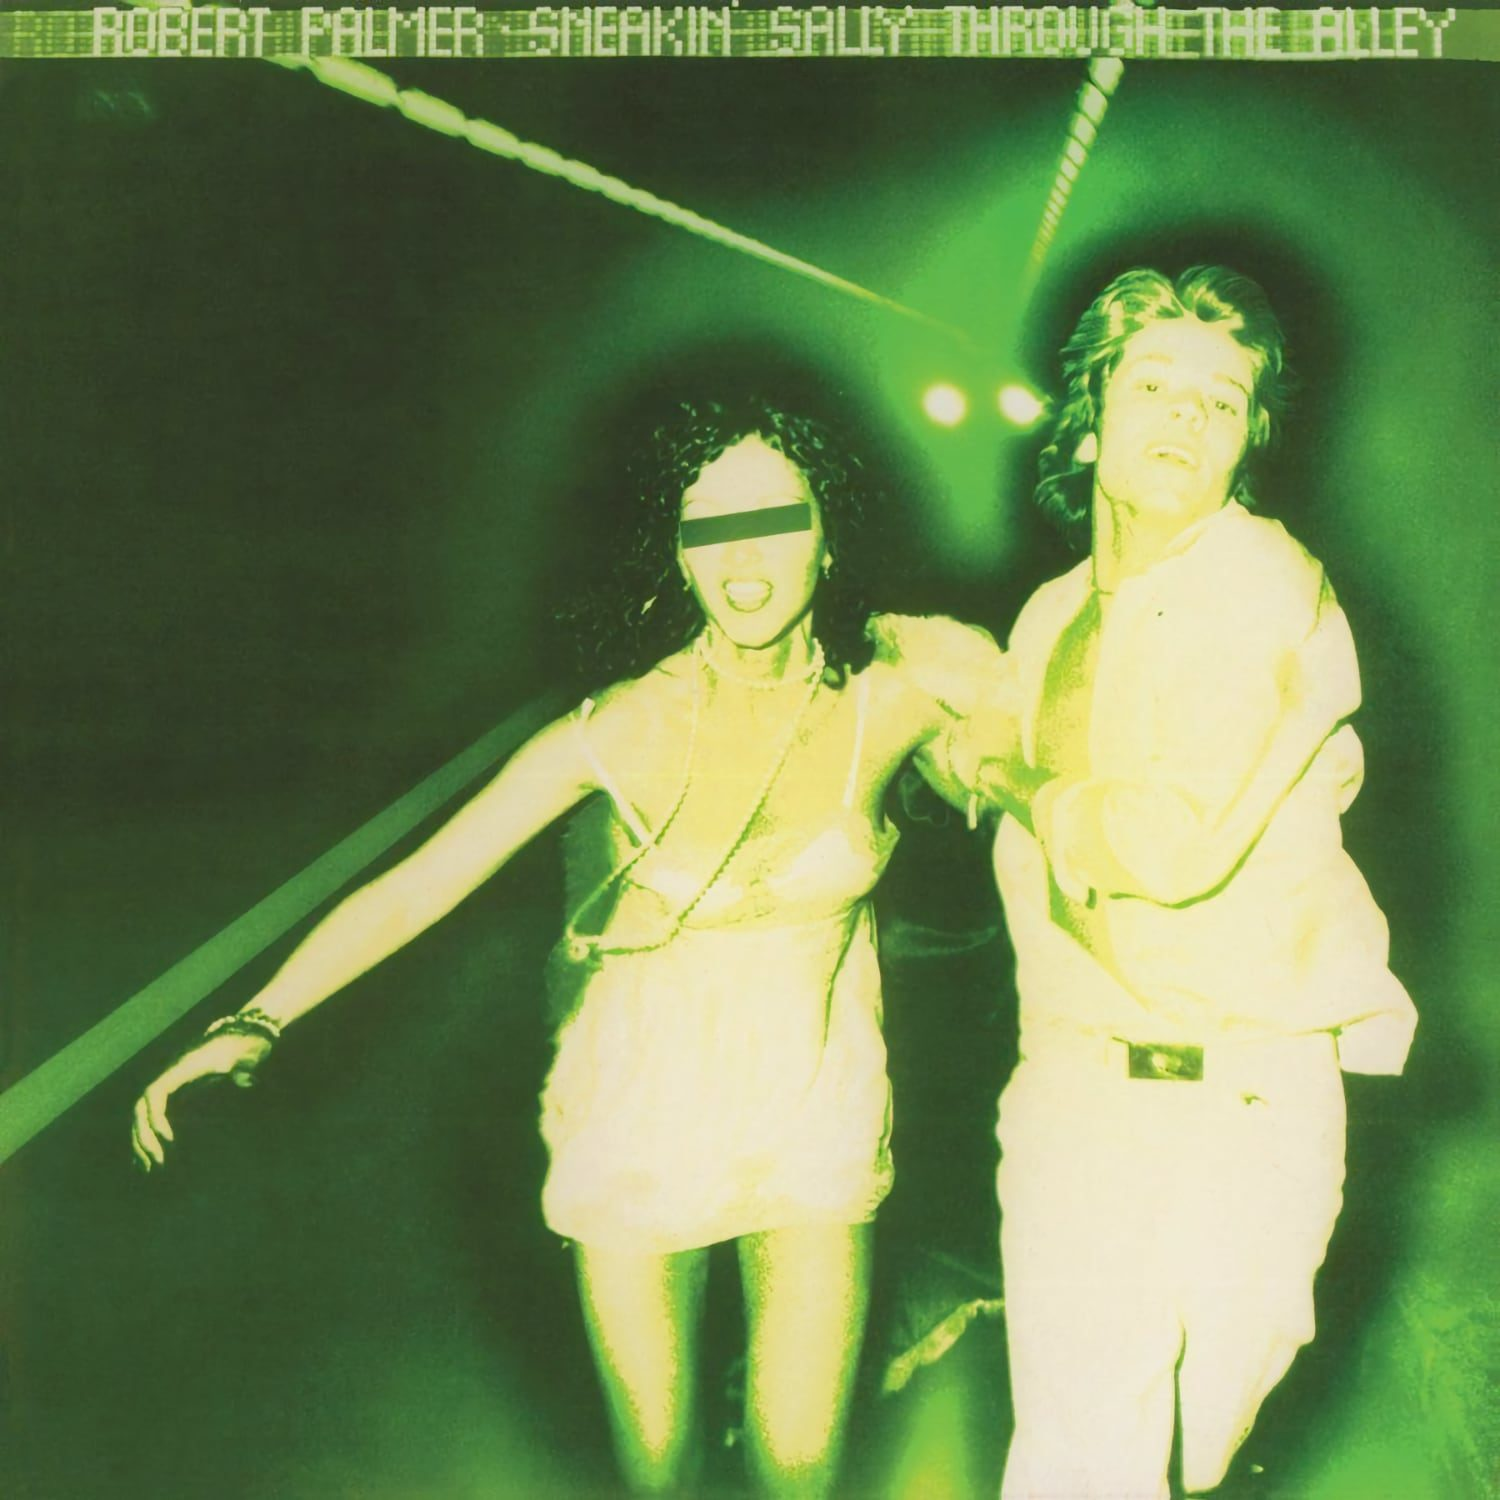 Robert Palmer - Sneakin' Sally Through The Alley